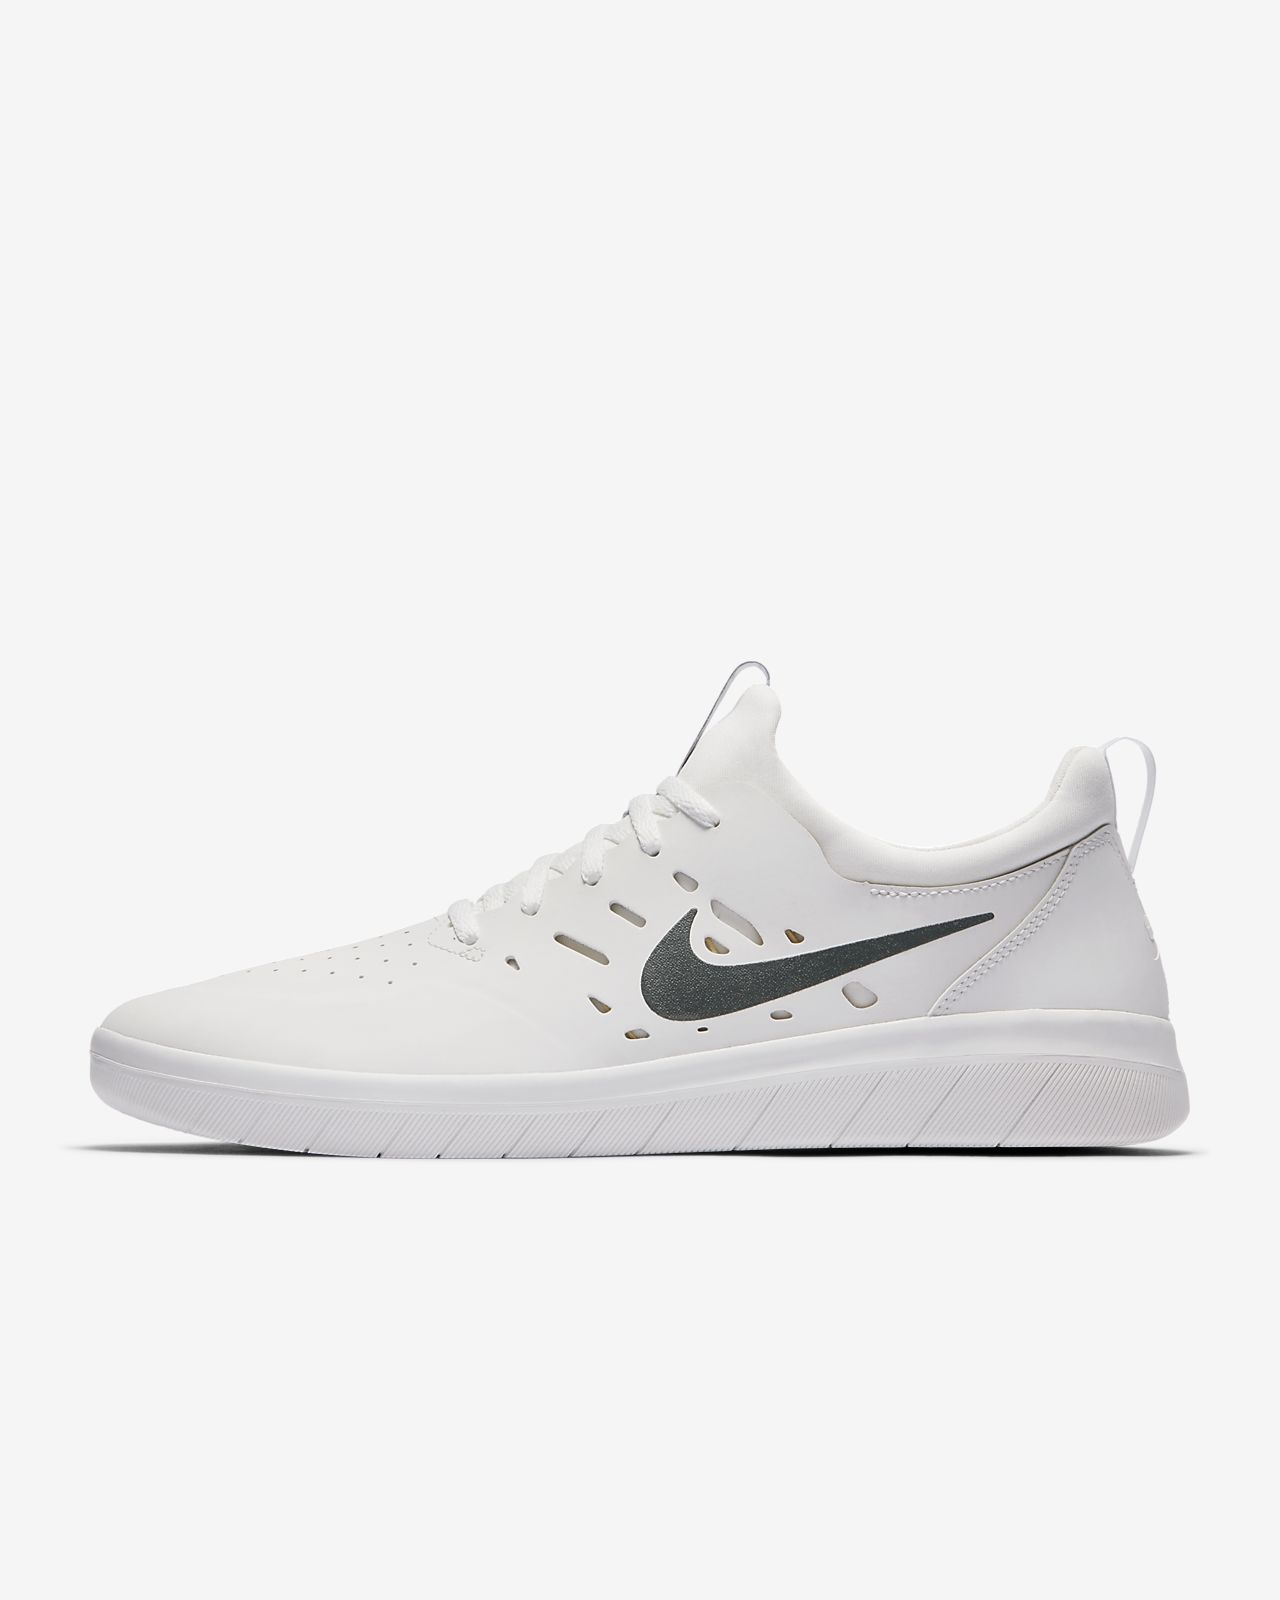 Buy Cheap Nike Mens Skate Shoes United States Best Sale On